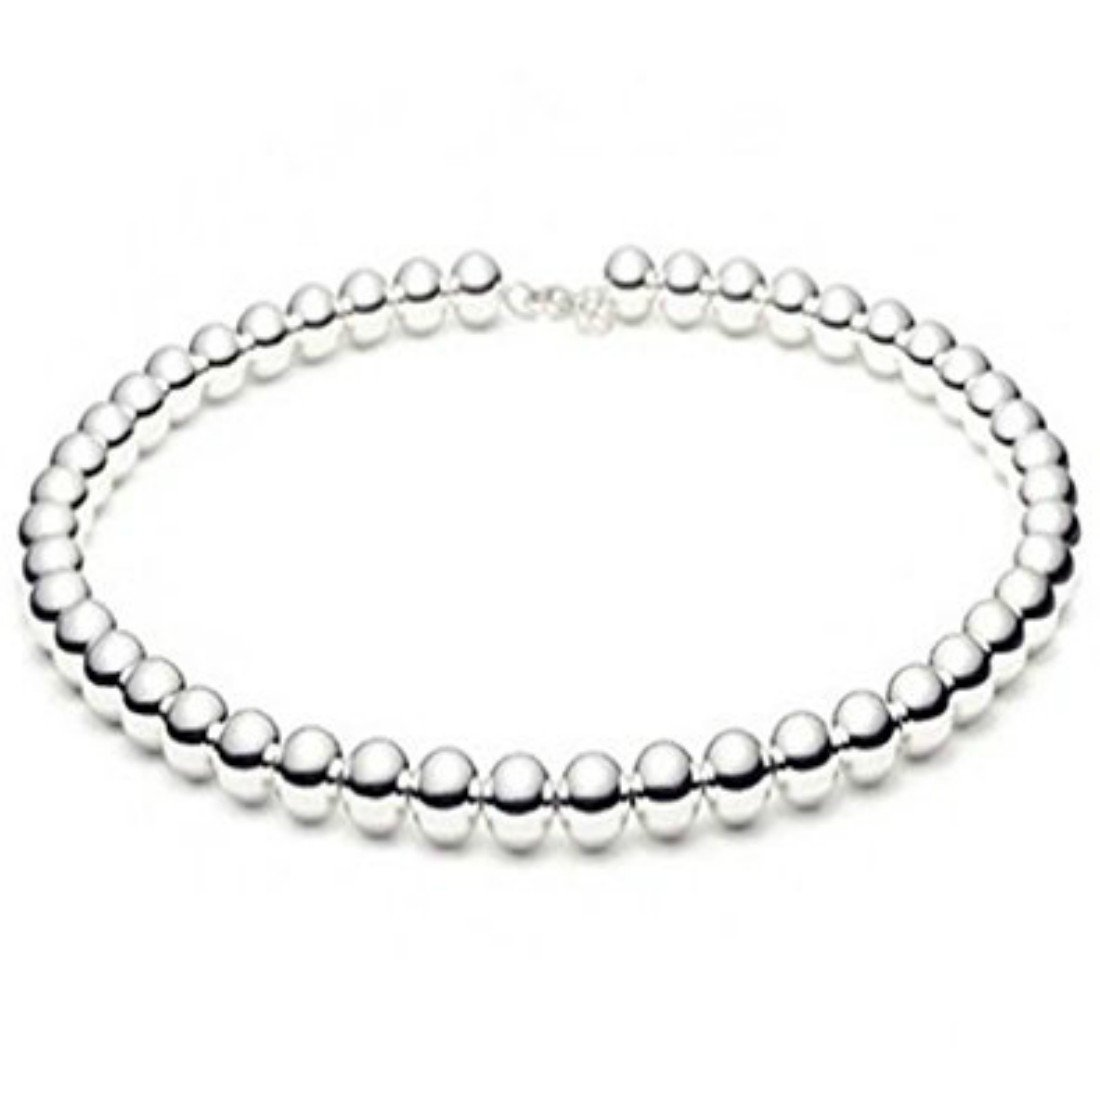 Beaded Necklace Shiny High Polished Ball Bead 925 Sterling Silver Choose Bead /& Length